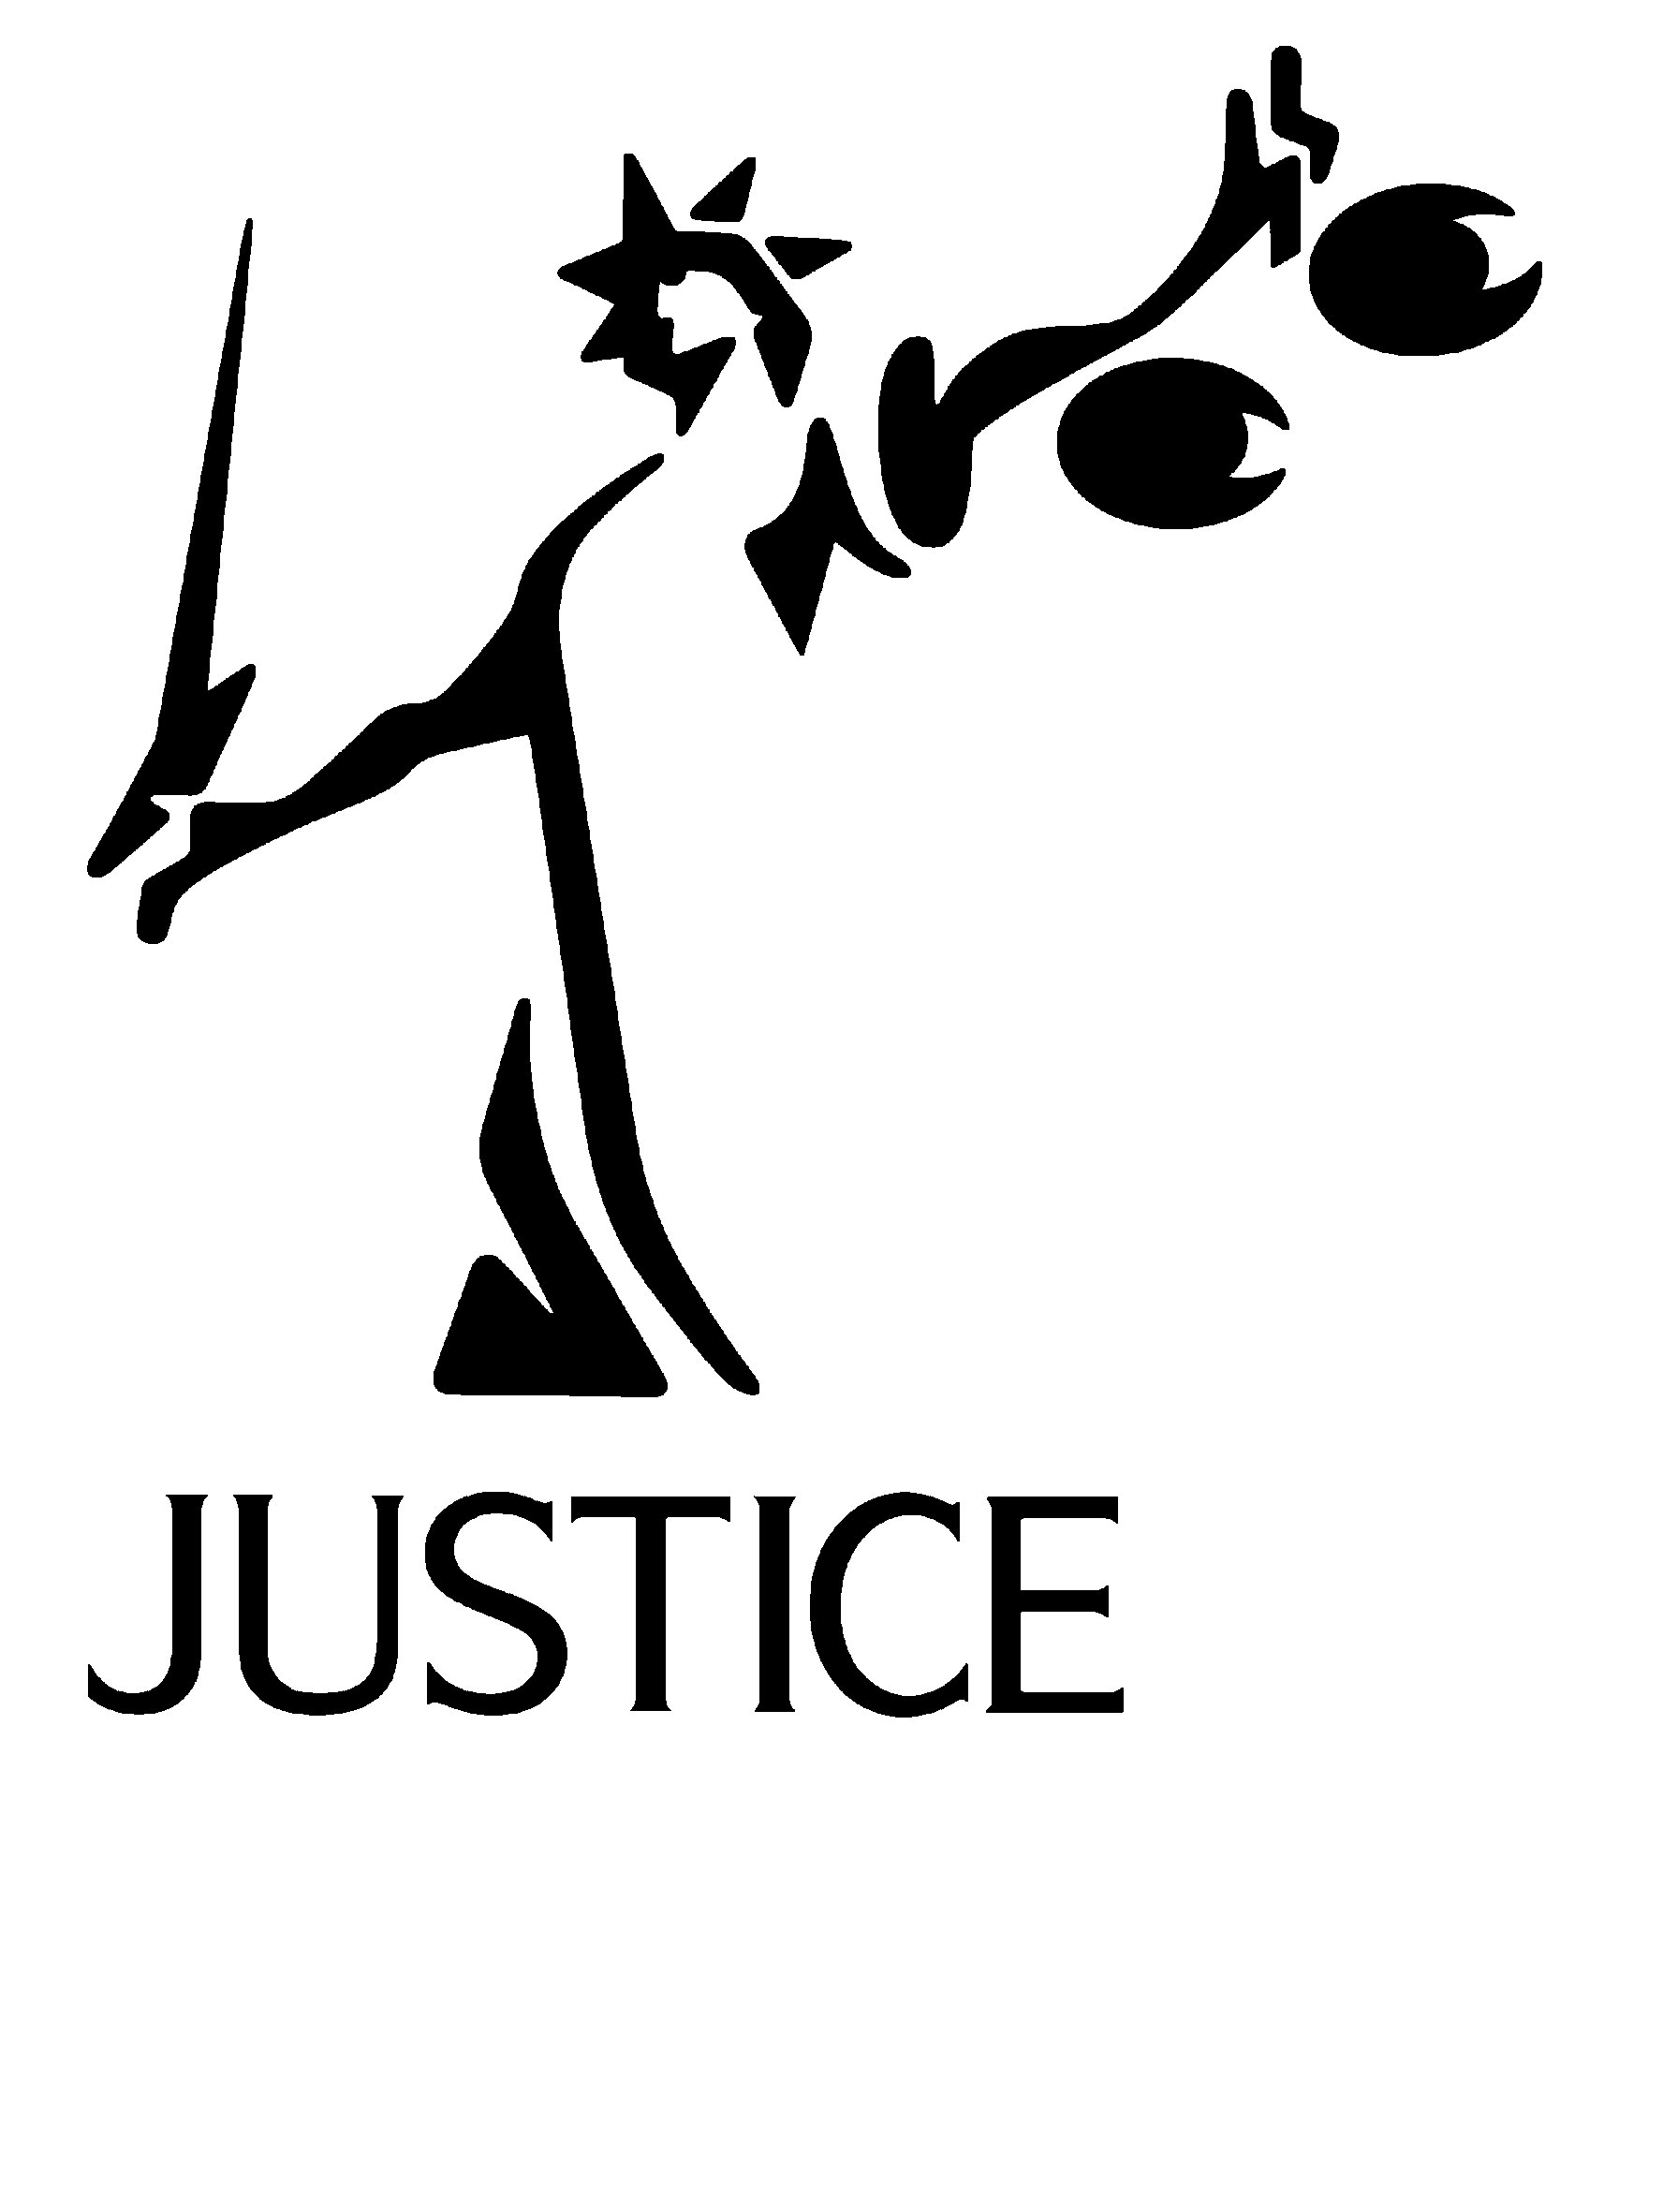 Free High-quality Justice Icon image #20992